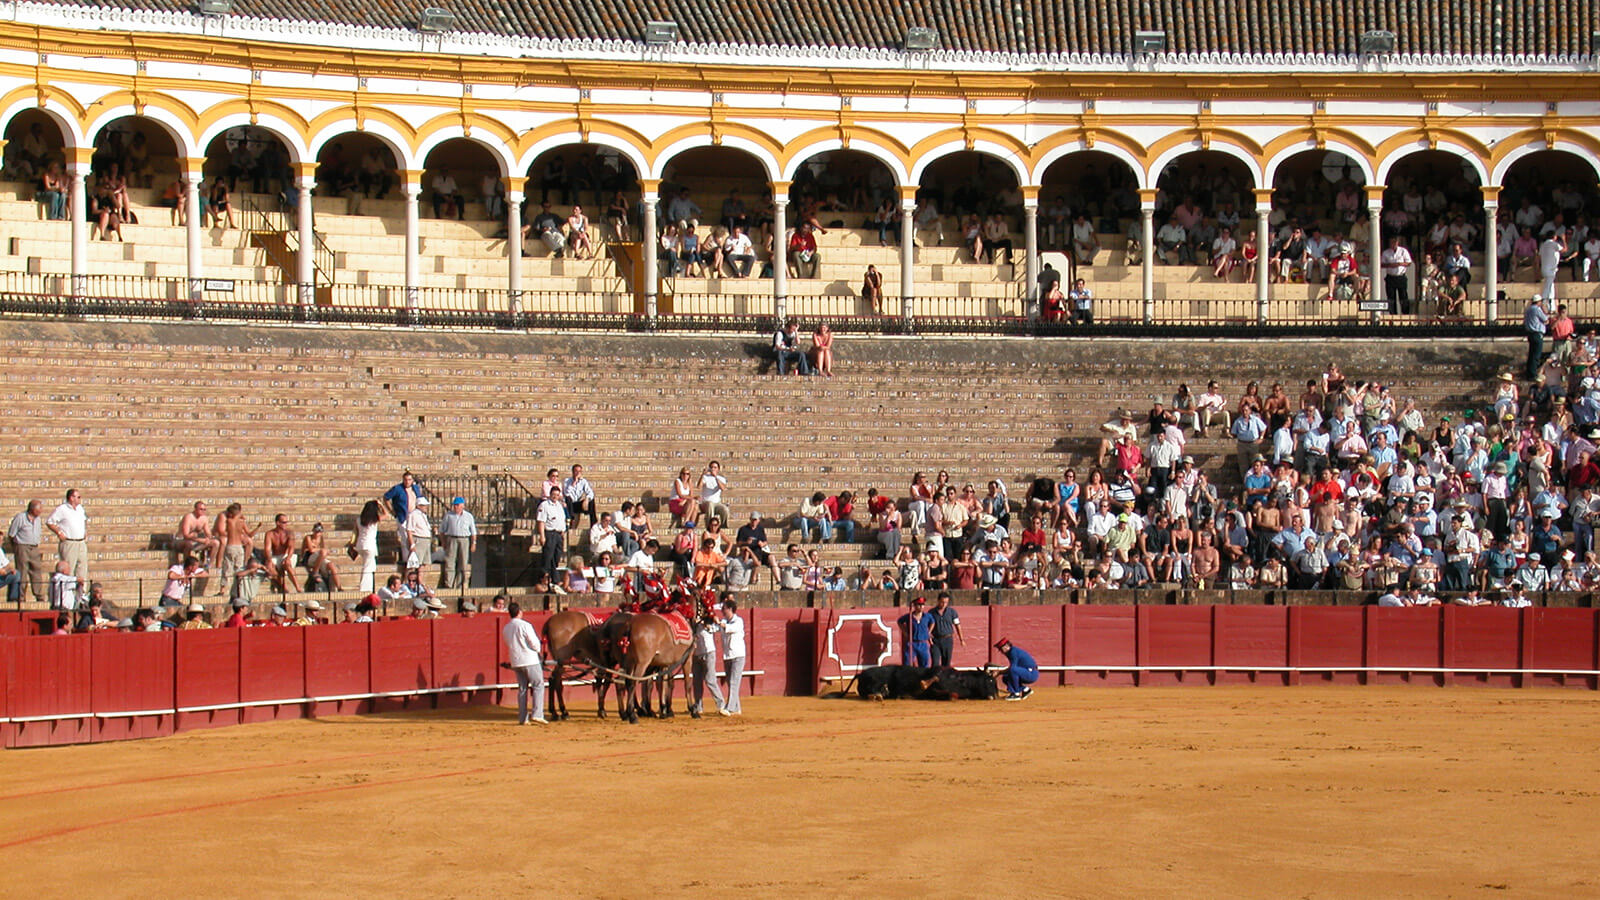 Tons of spectators ready to see a bullfight in Requena, Spain!